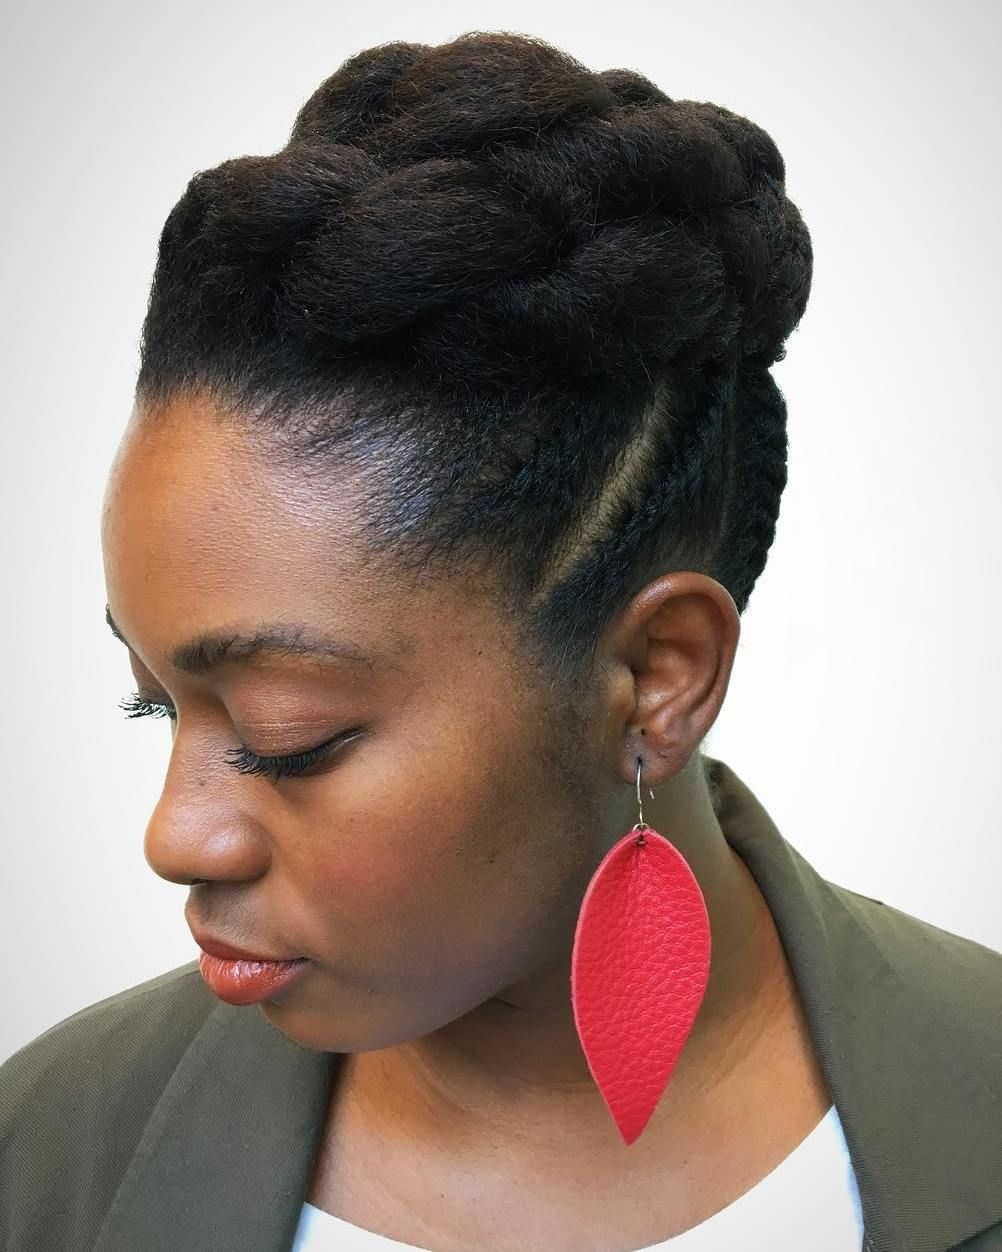 45 Classy Natural Hairstyles For Black Girls To Turn Heads In 2019 Natural Hair Styles Professional Natural Hairstyles Black Girl Natural Hair